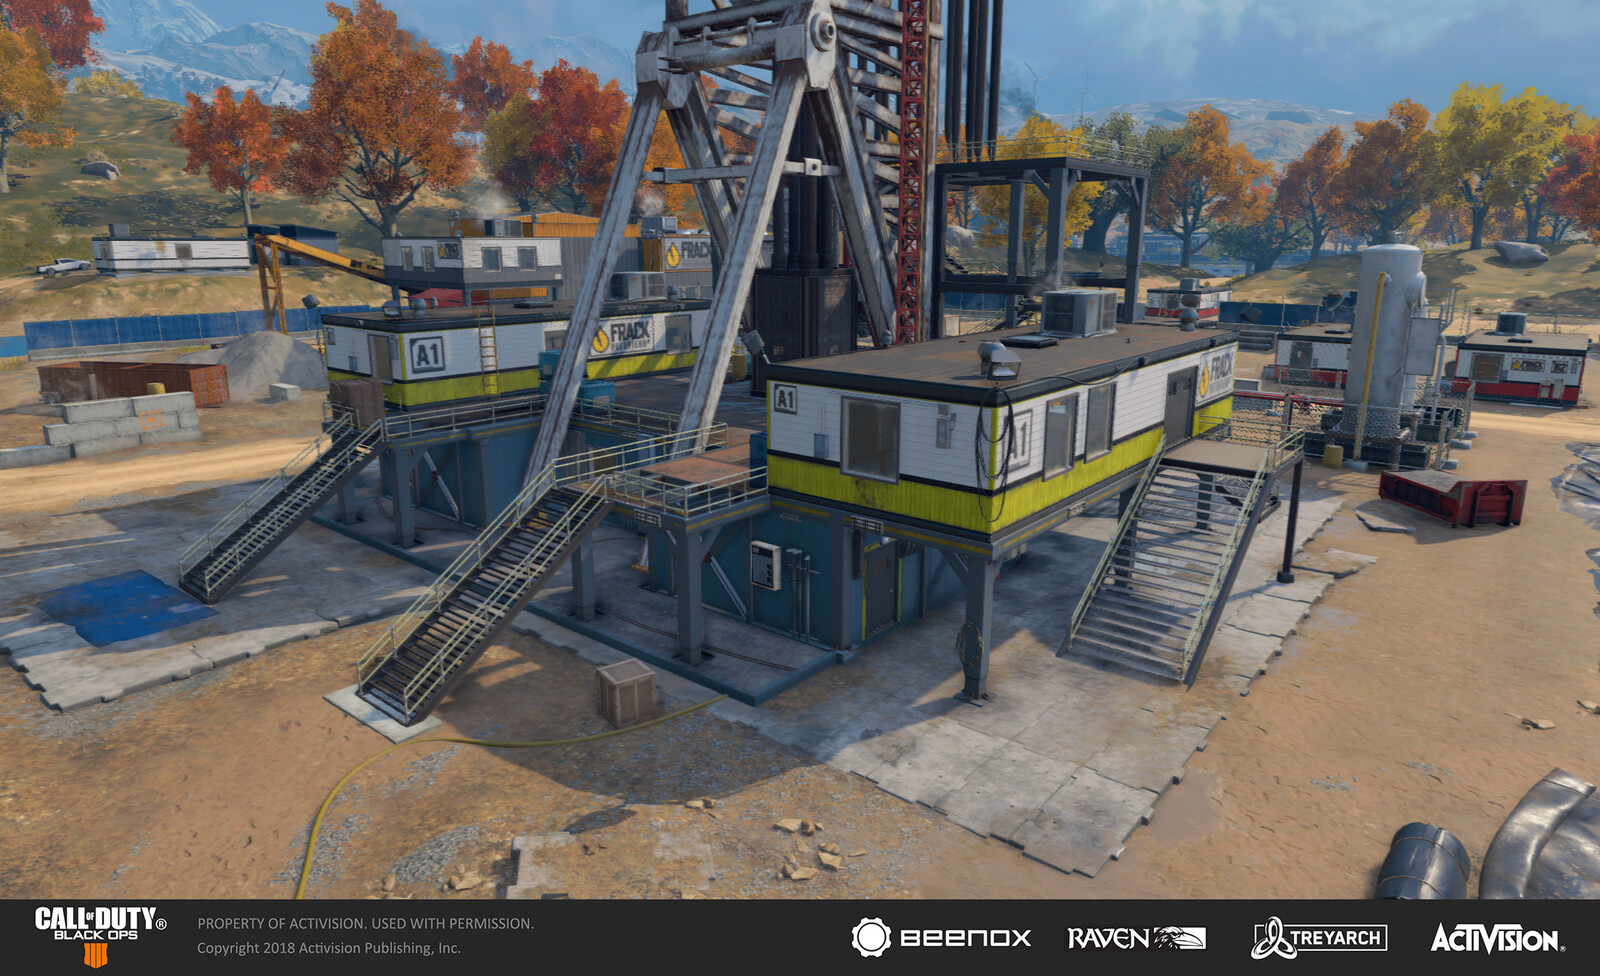 Overview of the main fracking rig in Blackout Mode. I worked on metallic beamwork and surface treatment of the platforms by configuring existing materials /models. I also bolstered the tall ladder by configuring a variety of existing models and textures.